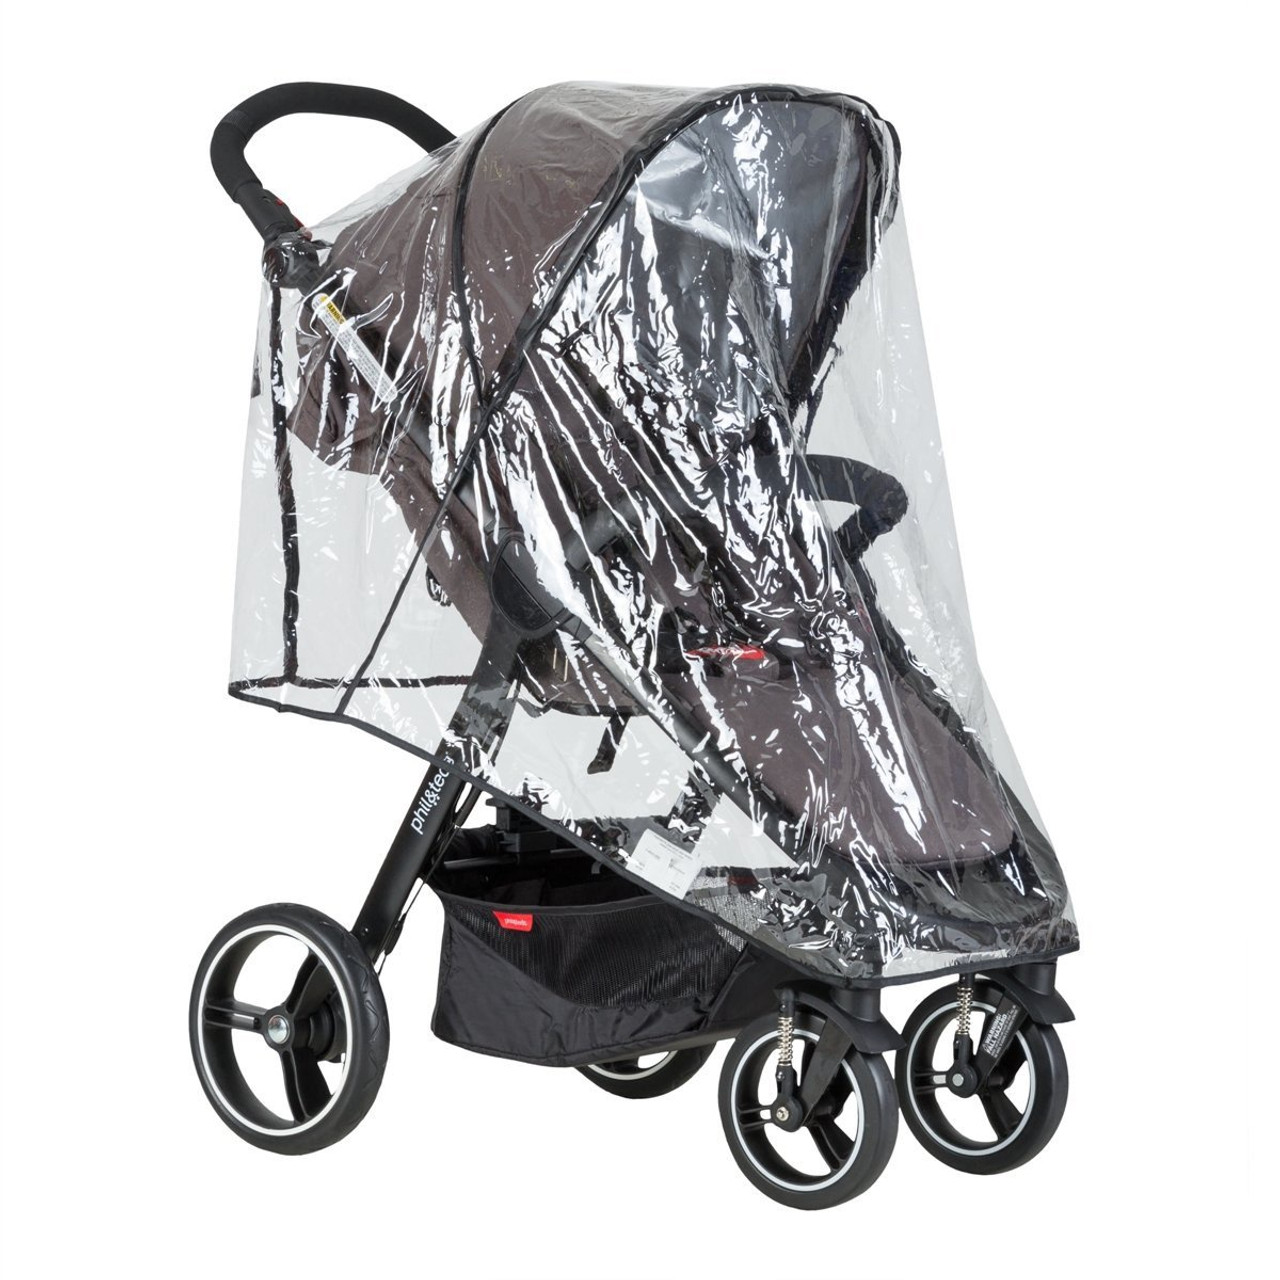 Phil & Teds Smart Single Storm Cover 2016 | Baby Barn Discounts Custom fit pram accessories storm rain cover for the Phil & teds Smart buggy.